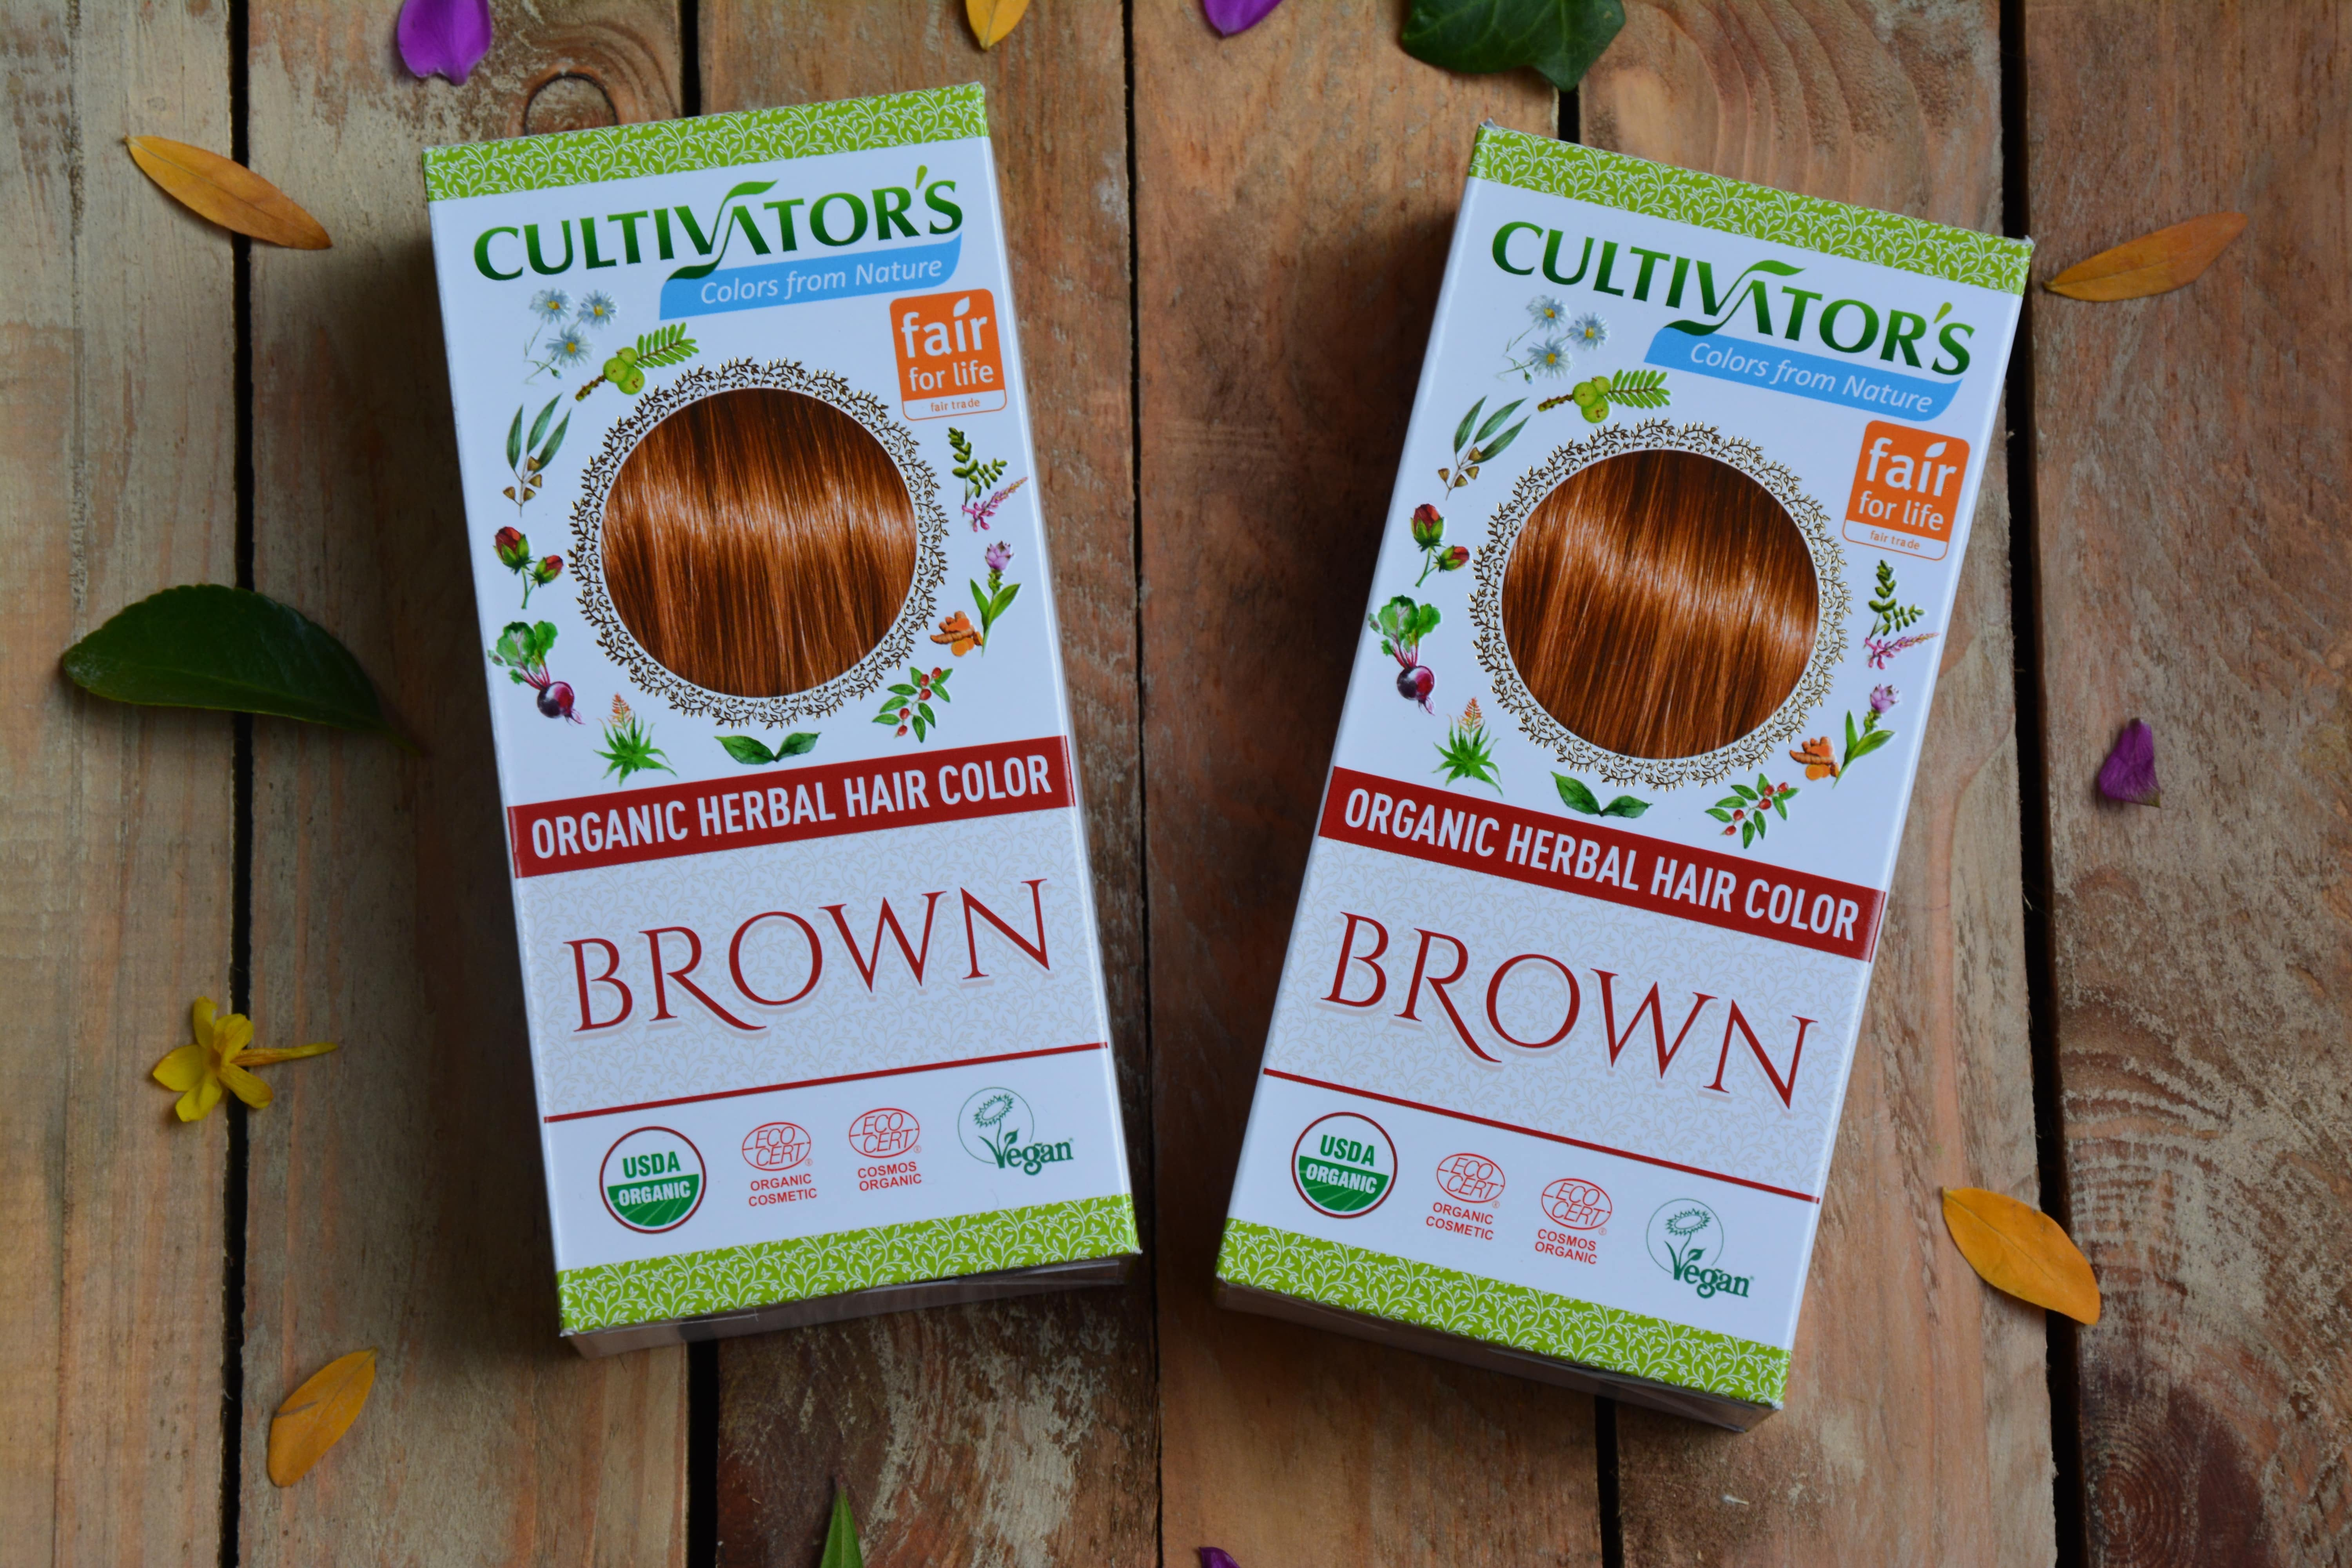 Coloration Brown - Cultivator's India - MA PLANETE BEAUTE